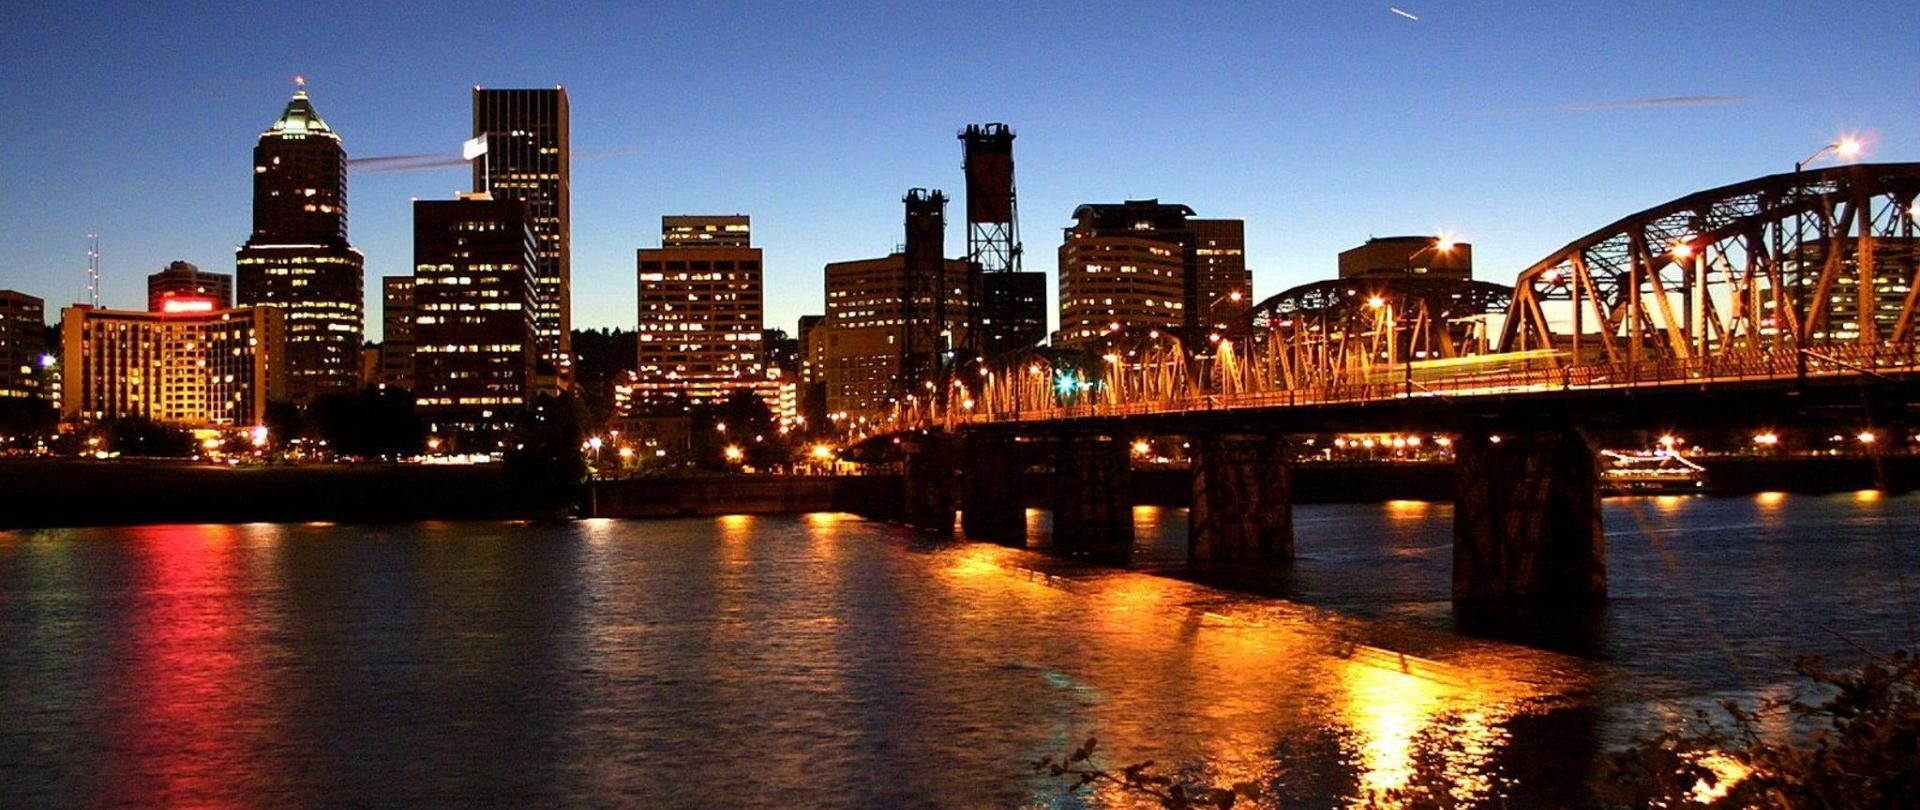 portland-night-skyline-img-4149.jpg